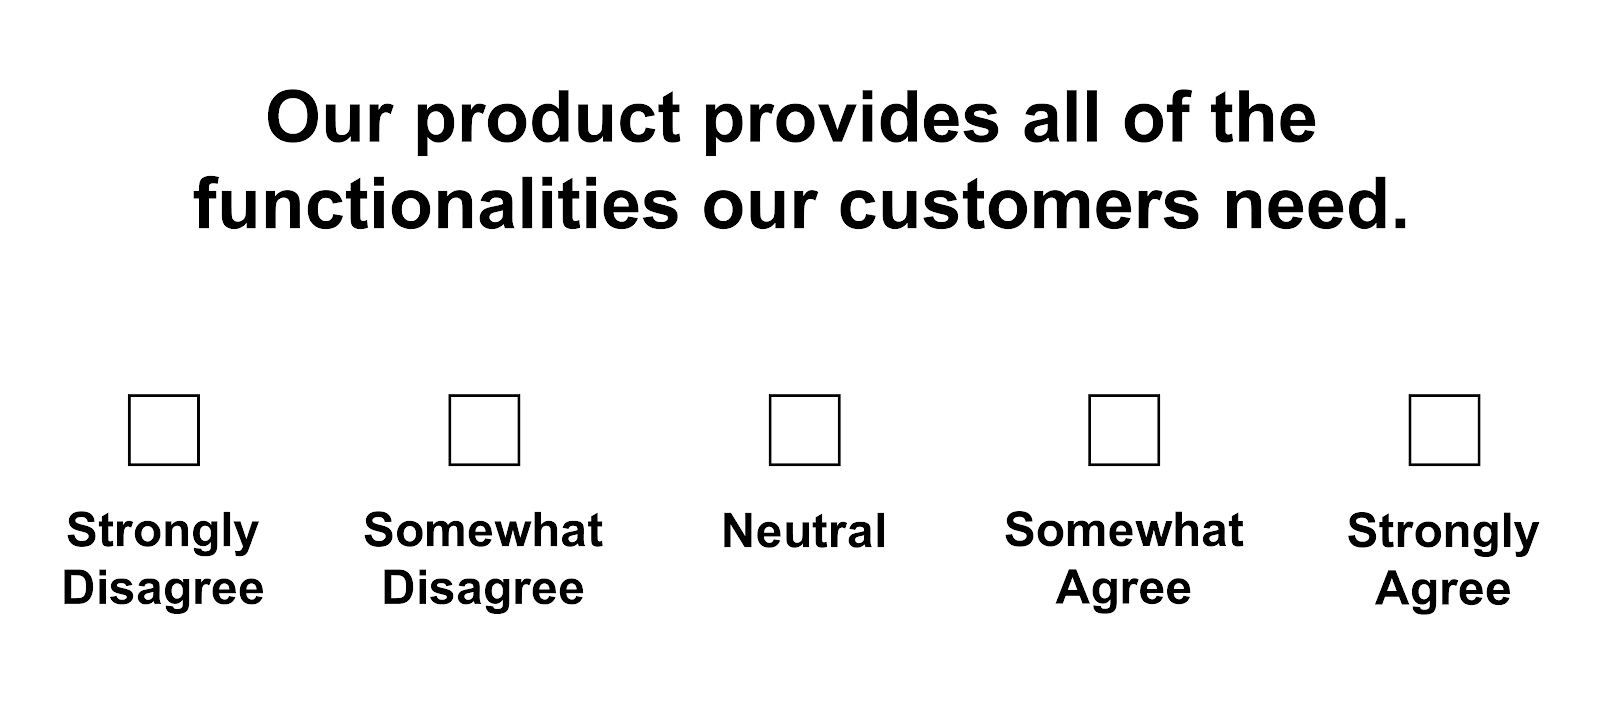 Example of Likert scale style survey question